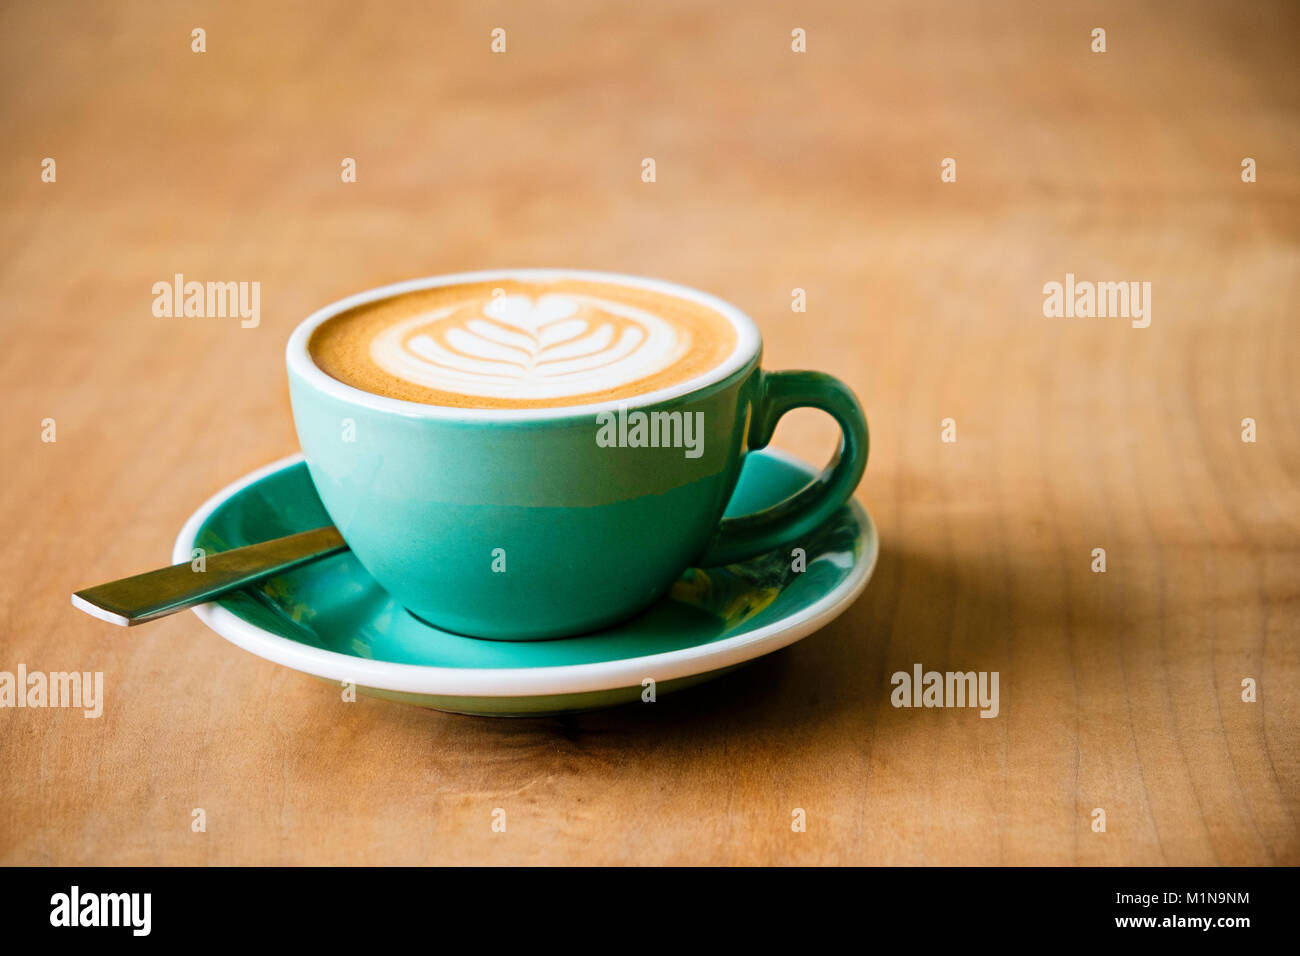 A cup of coffee with latte art of a leaf in the foam with a spoon on a wooden table - Stock Image